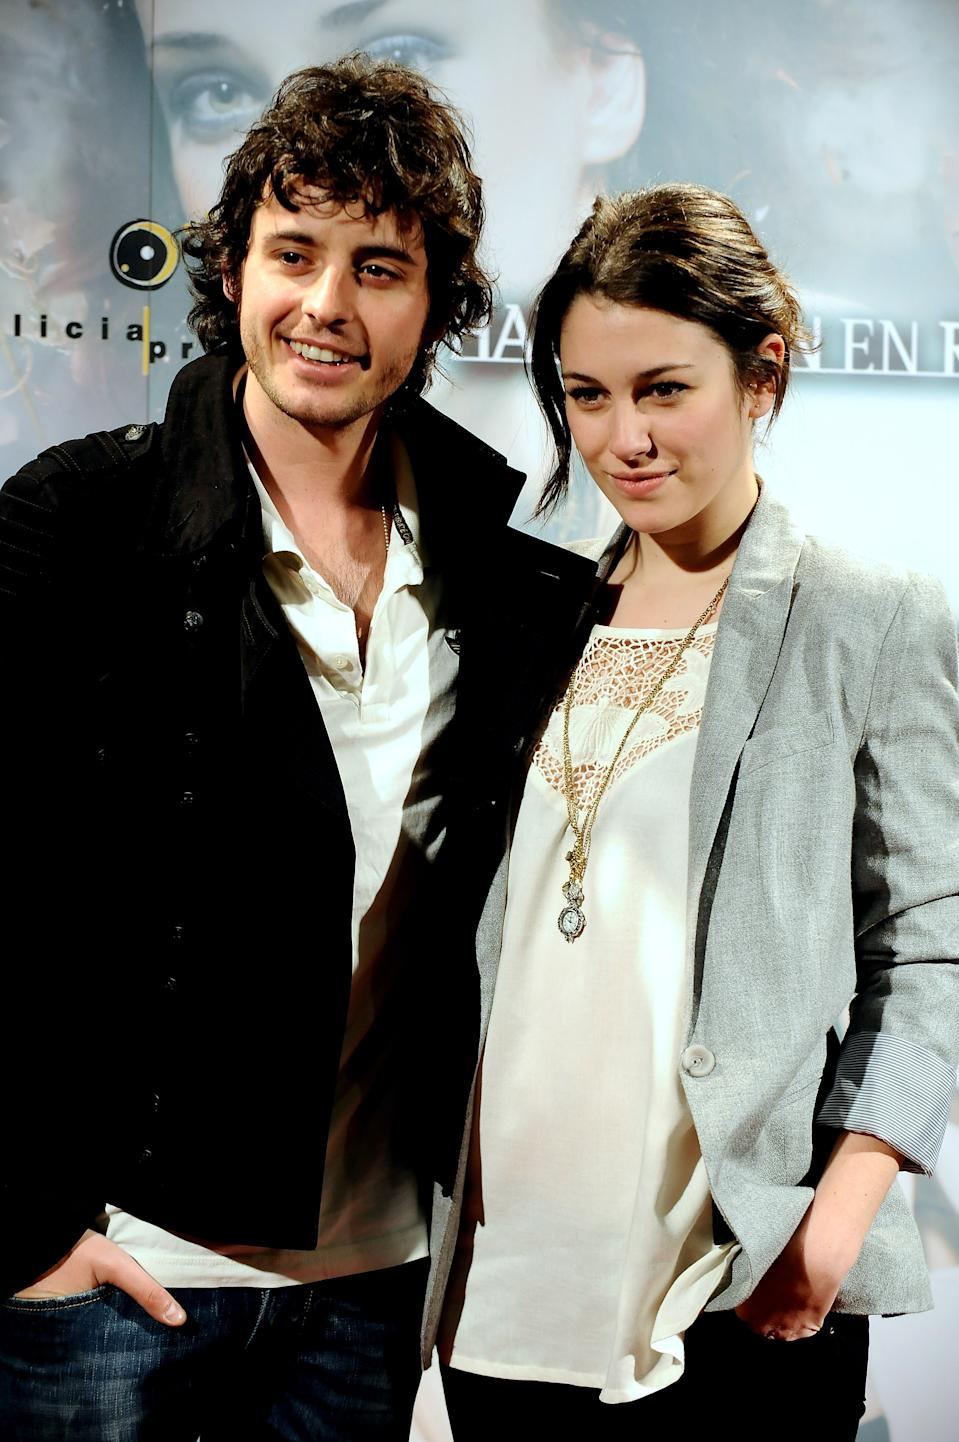 """MADRID, SPAIN - MAY 06:  Actor Javier Pereira (L) and actress Blanca Suarez attend """"Habitacion en Roma"""" premiere at the Capitol cinema on May 6, 2010 in Madrid, Spain.  (Photo by Carlos Alvarez/Getty Images)"""